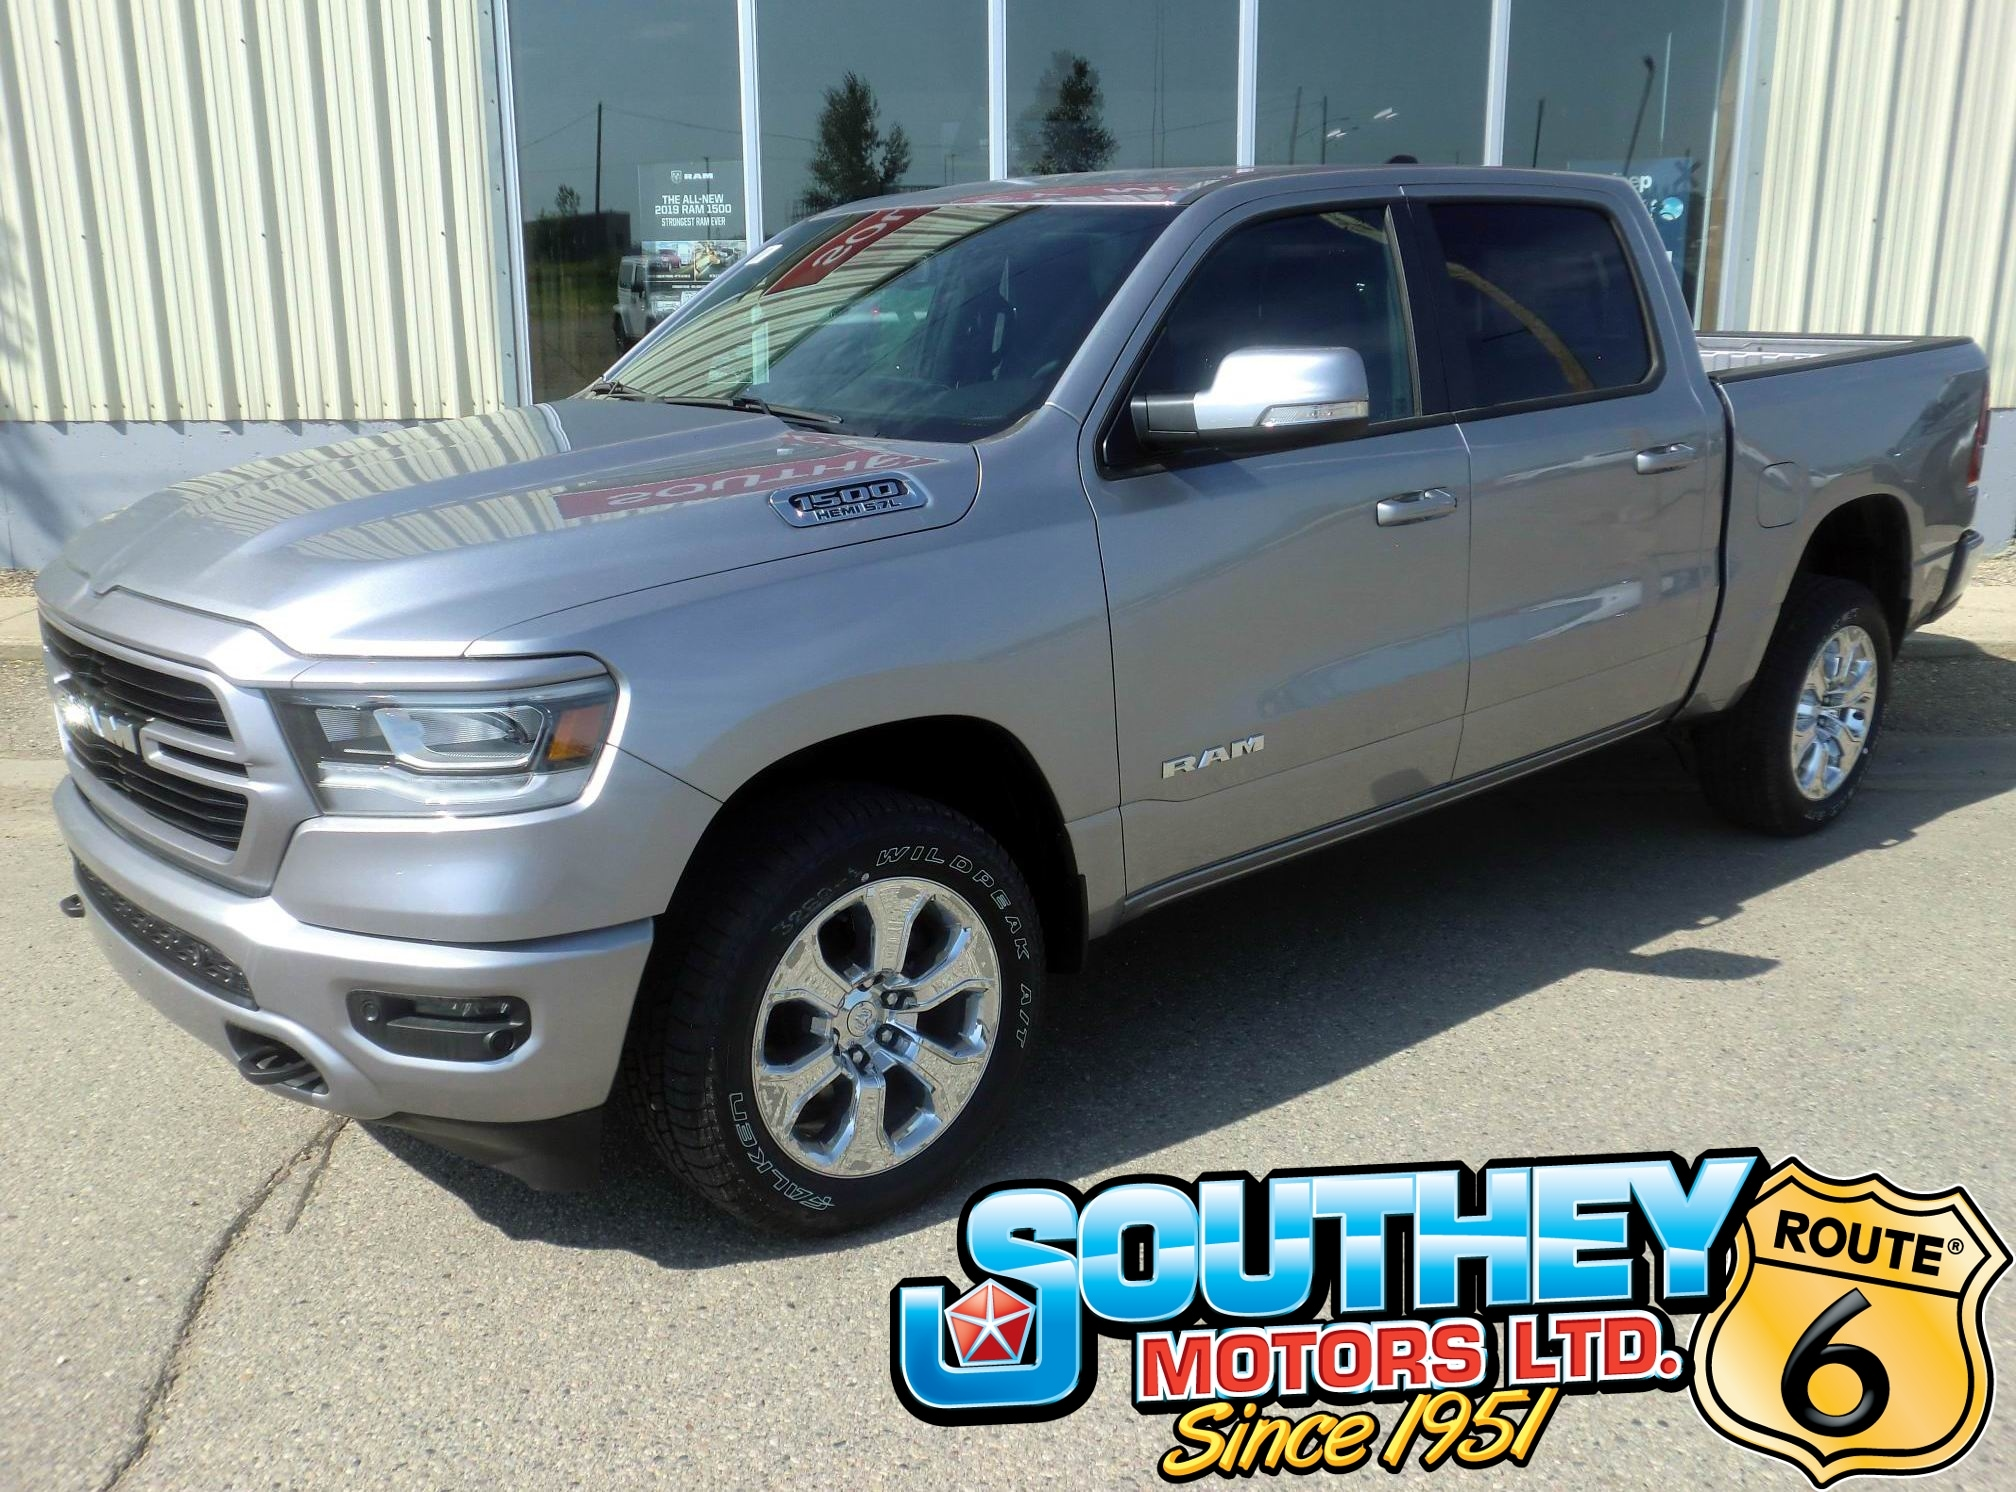 New 2019 Ram All-New 1500 Big Horn Truck Crew Cab for sale in Southey, SK